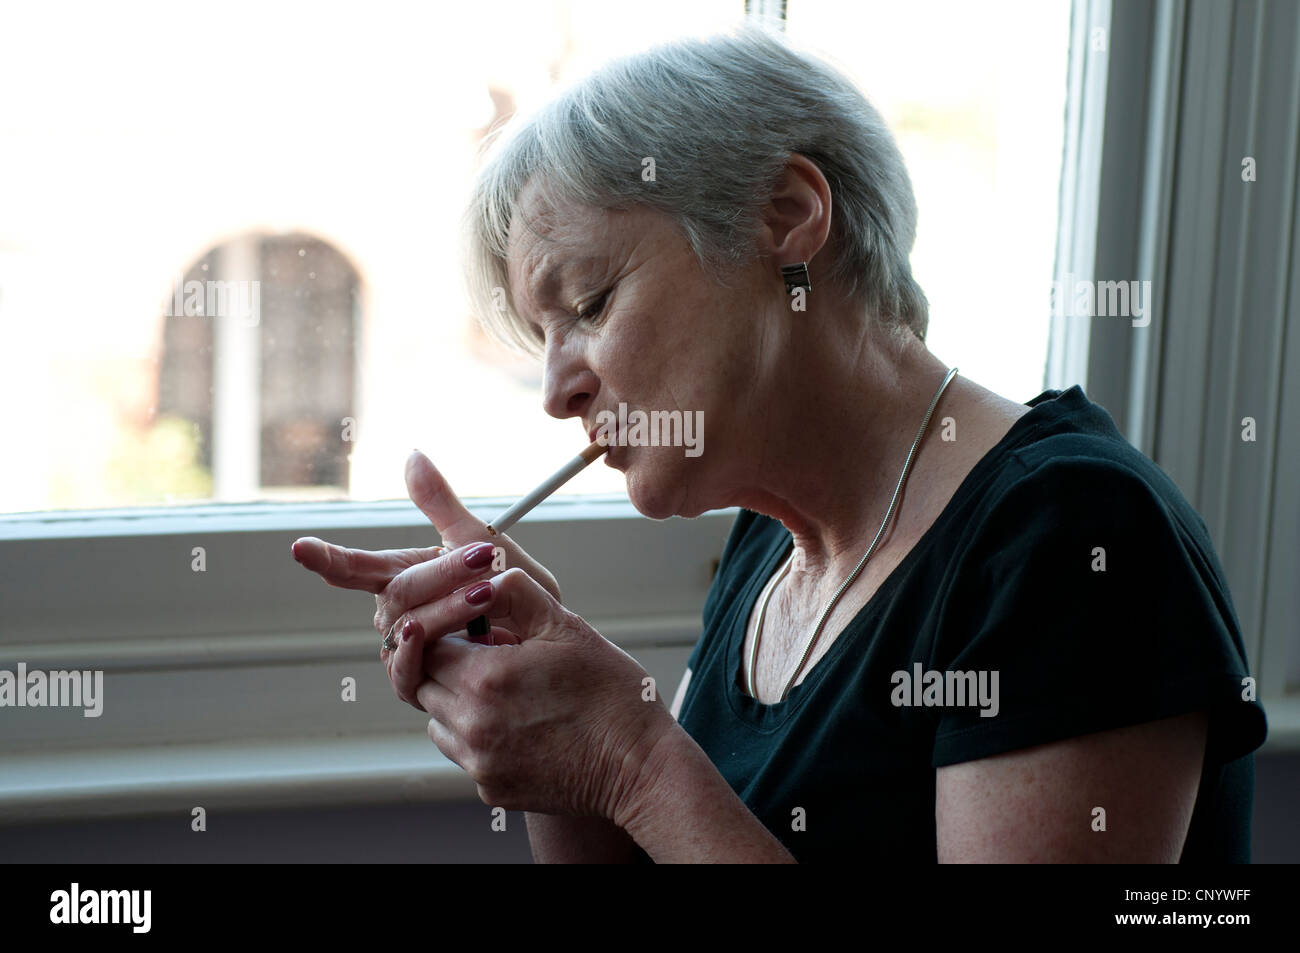 Middle aged woman near window lighting a cigarette - Stock Image